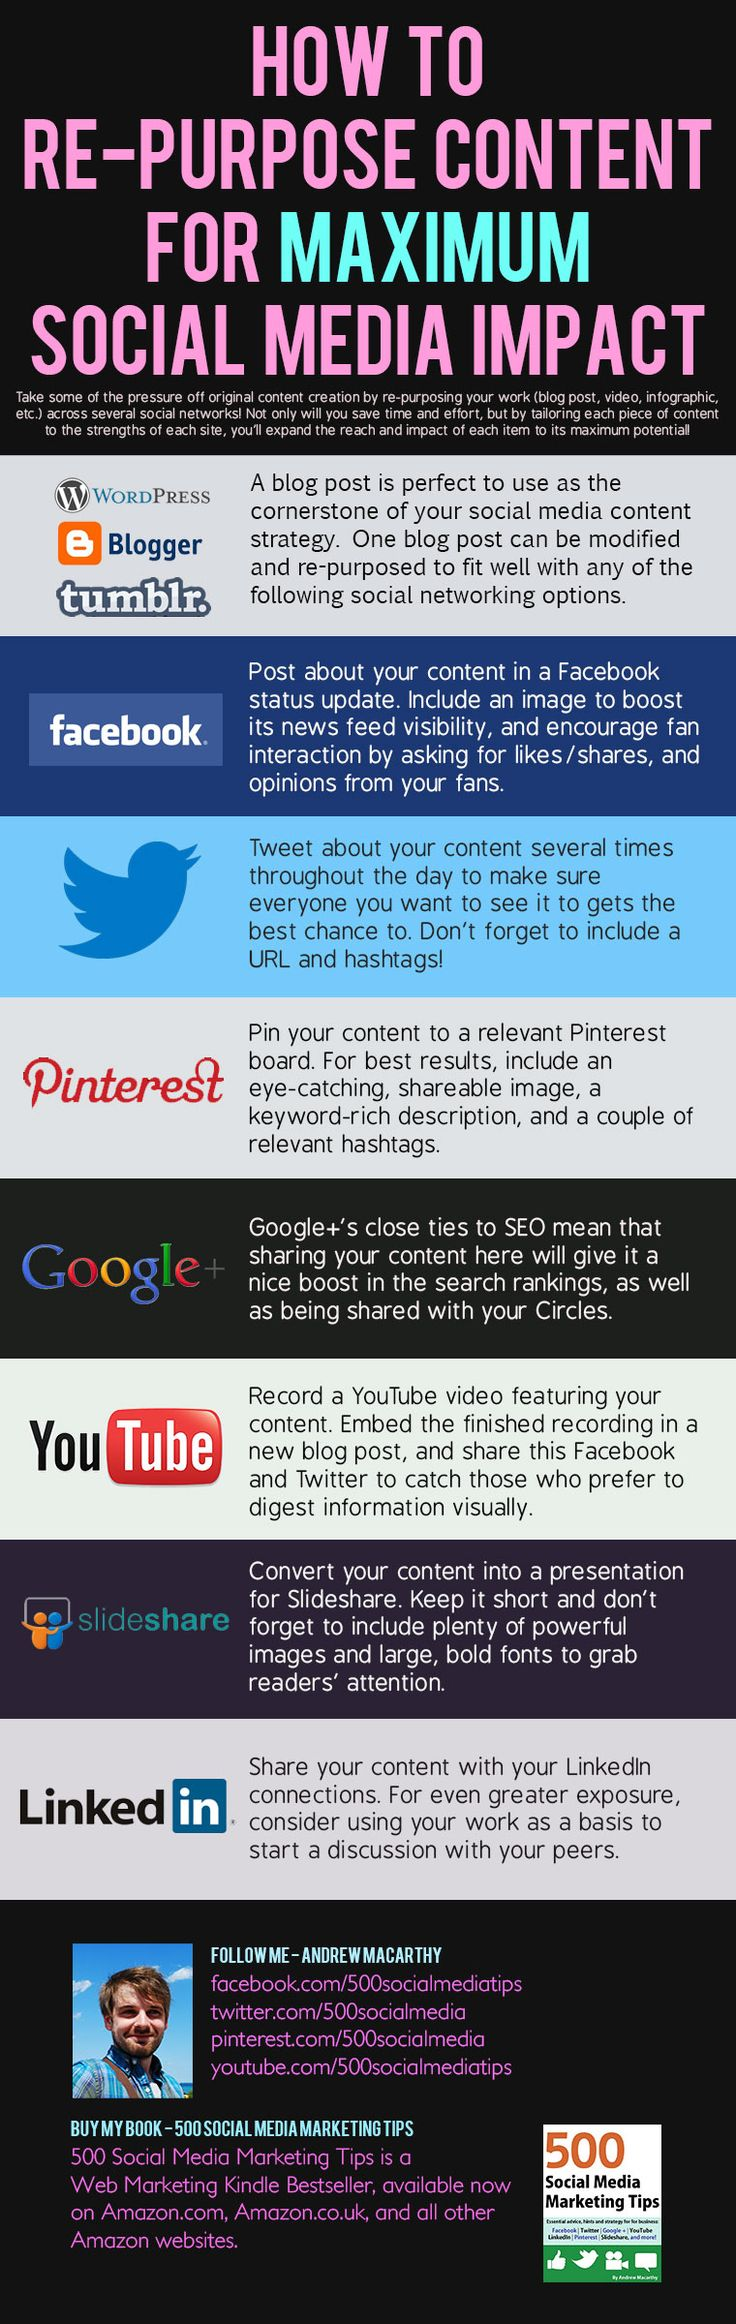 How to Re-Purpose Content For Maximum Social Media Impact [INFOGRAPHIC] #socialmedia #infographic